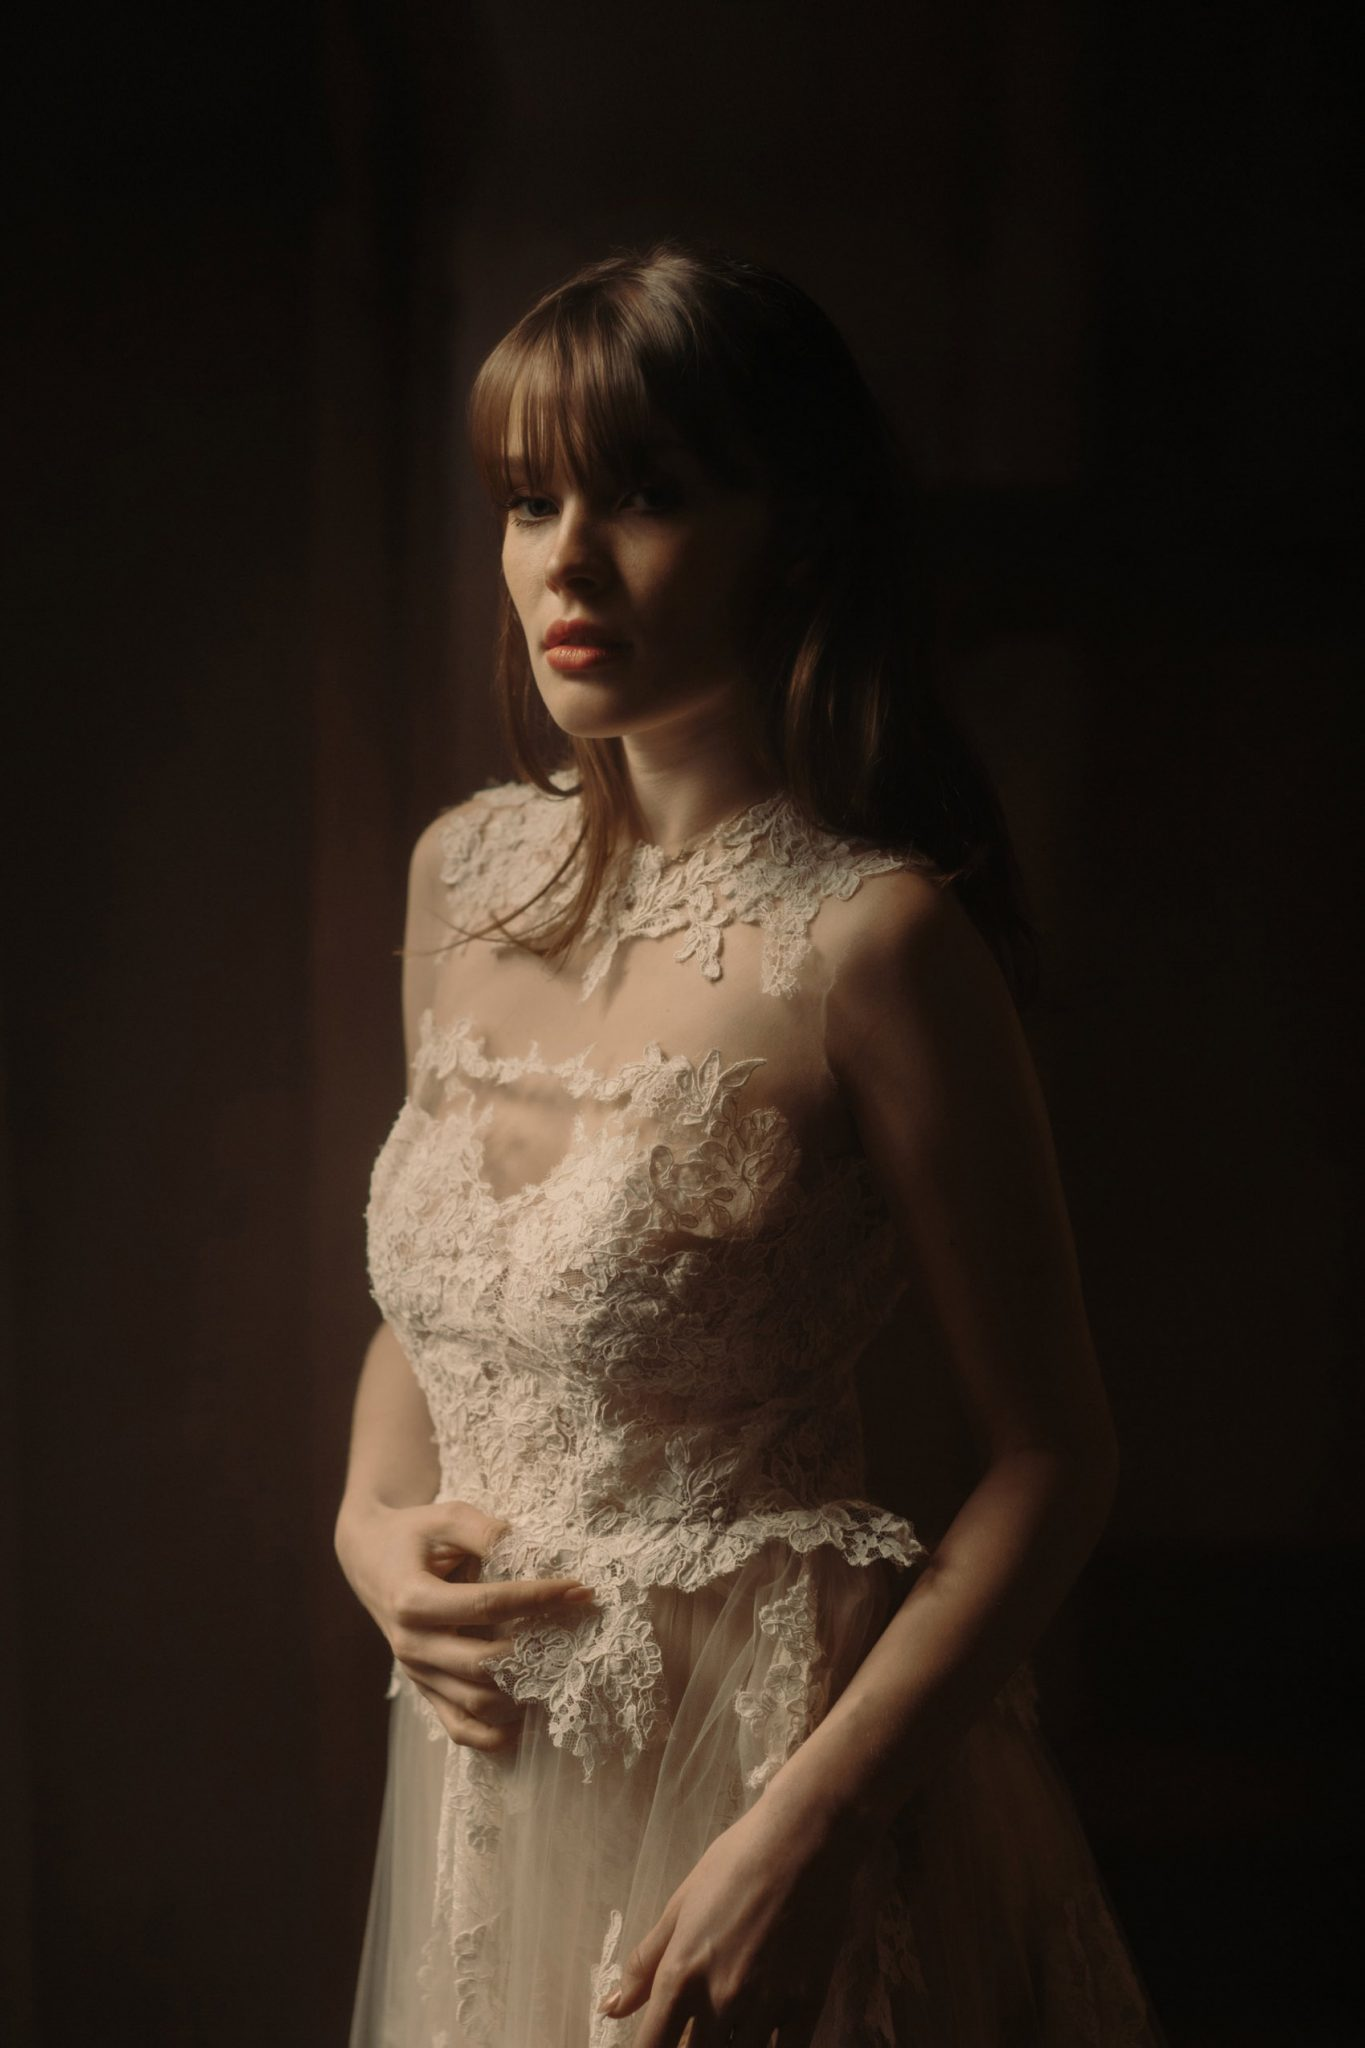 bride portrait with lace dress